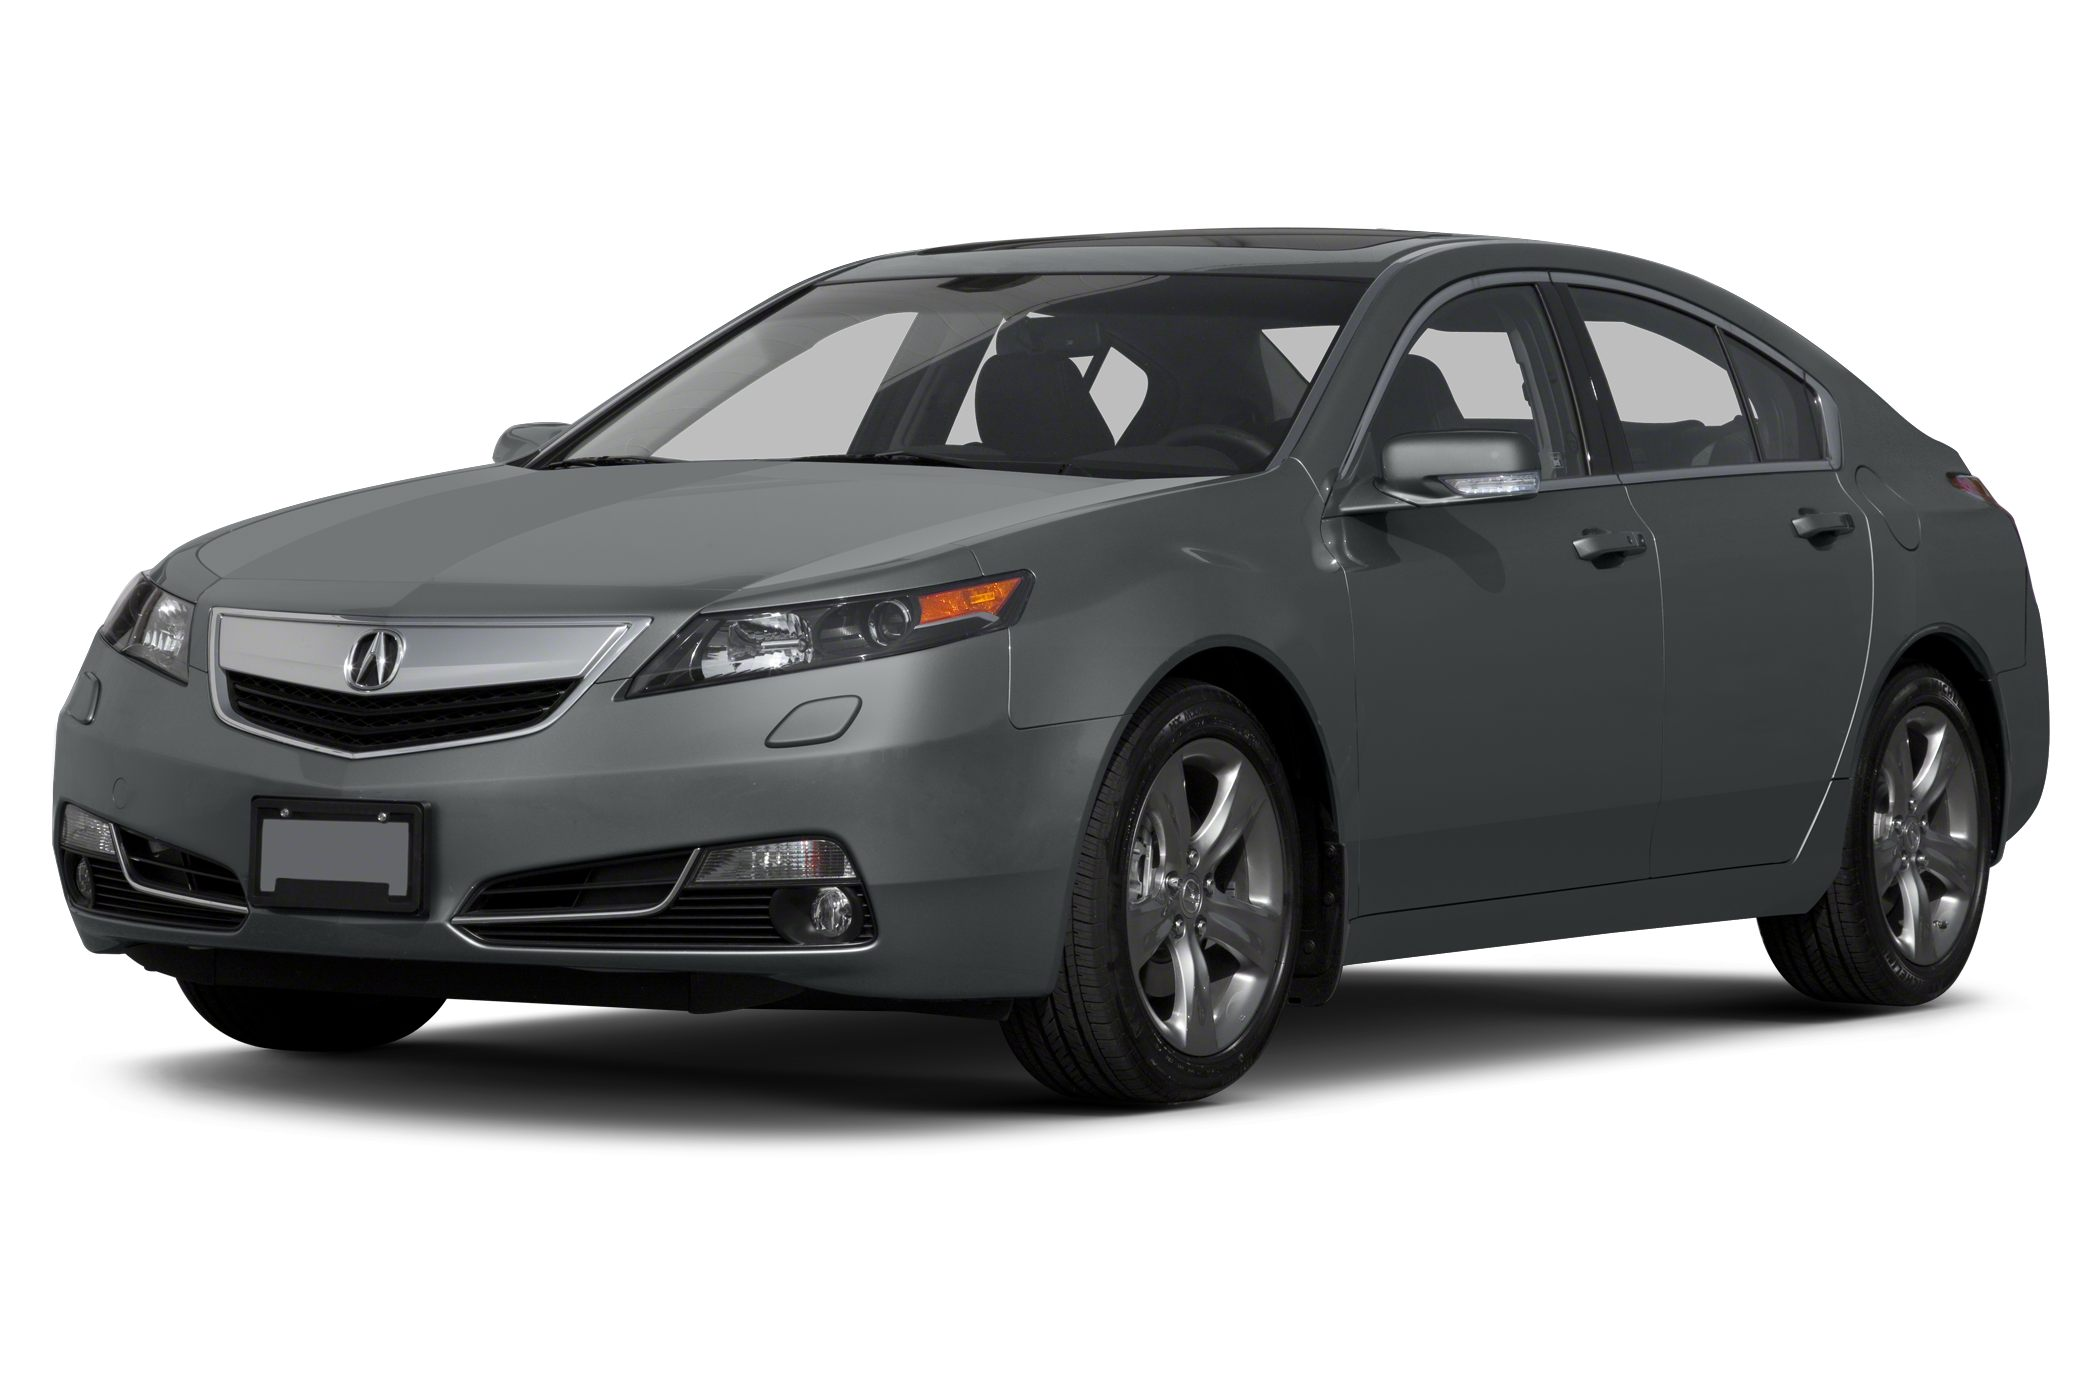 2013 Acura TL 37 Technology  COME SEE THE DIFFERENCE AT TAJ AUTO MALL WE SELL OUR VEHICL